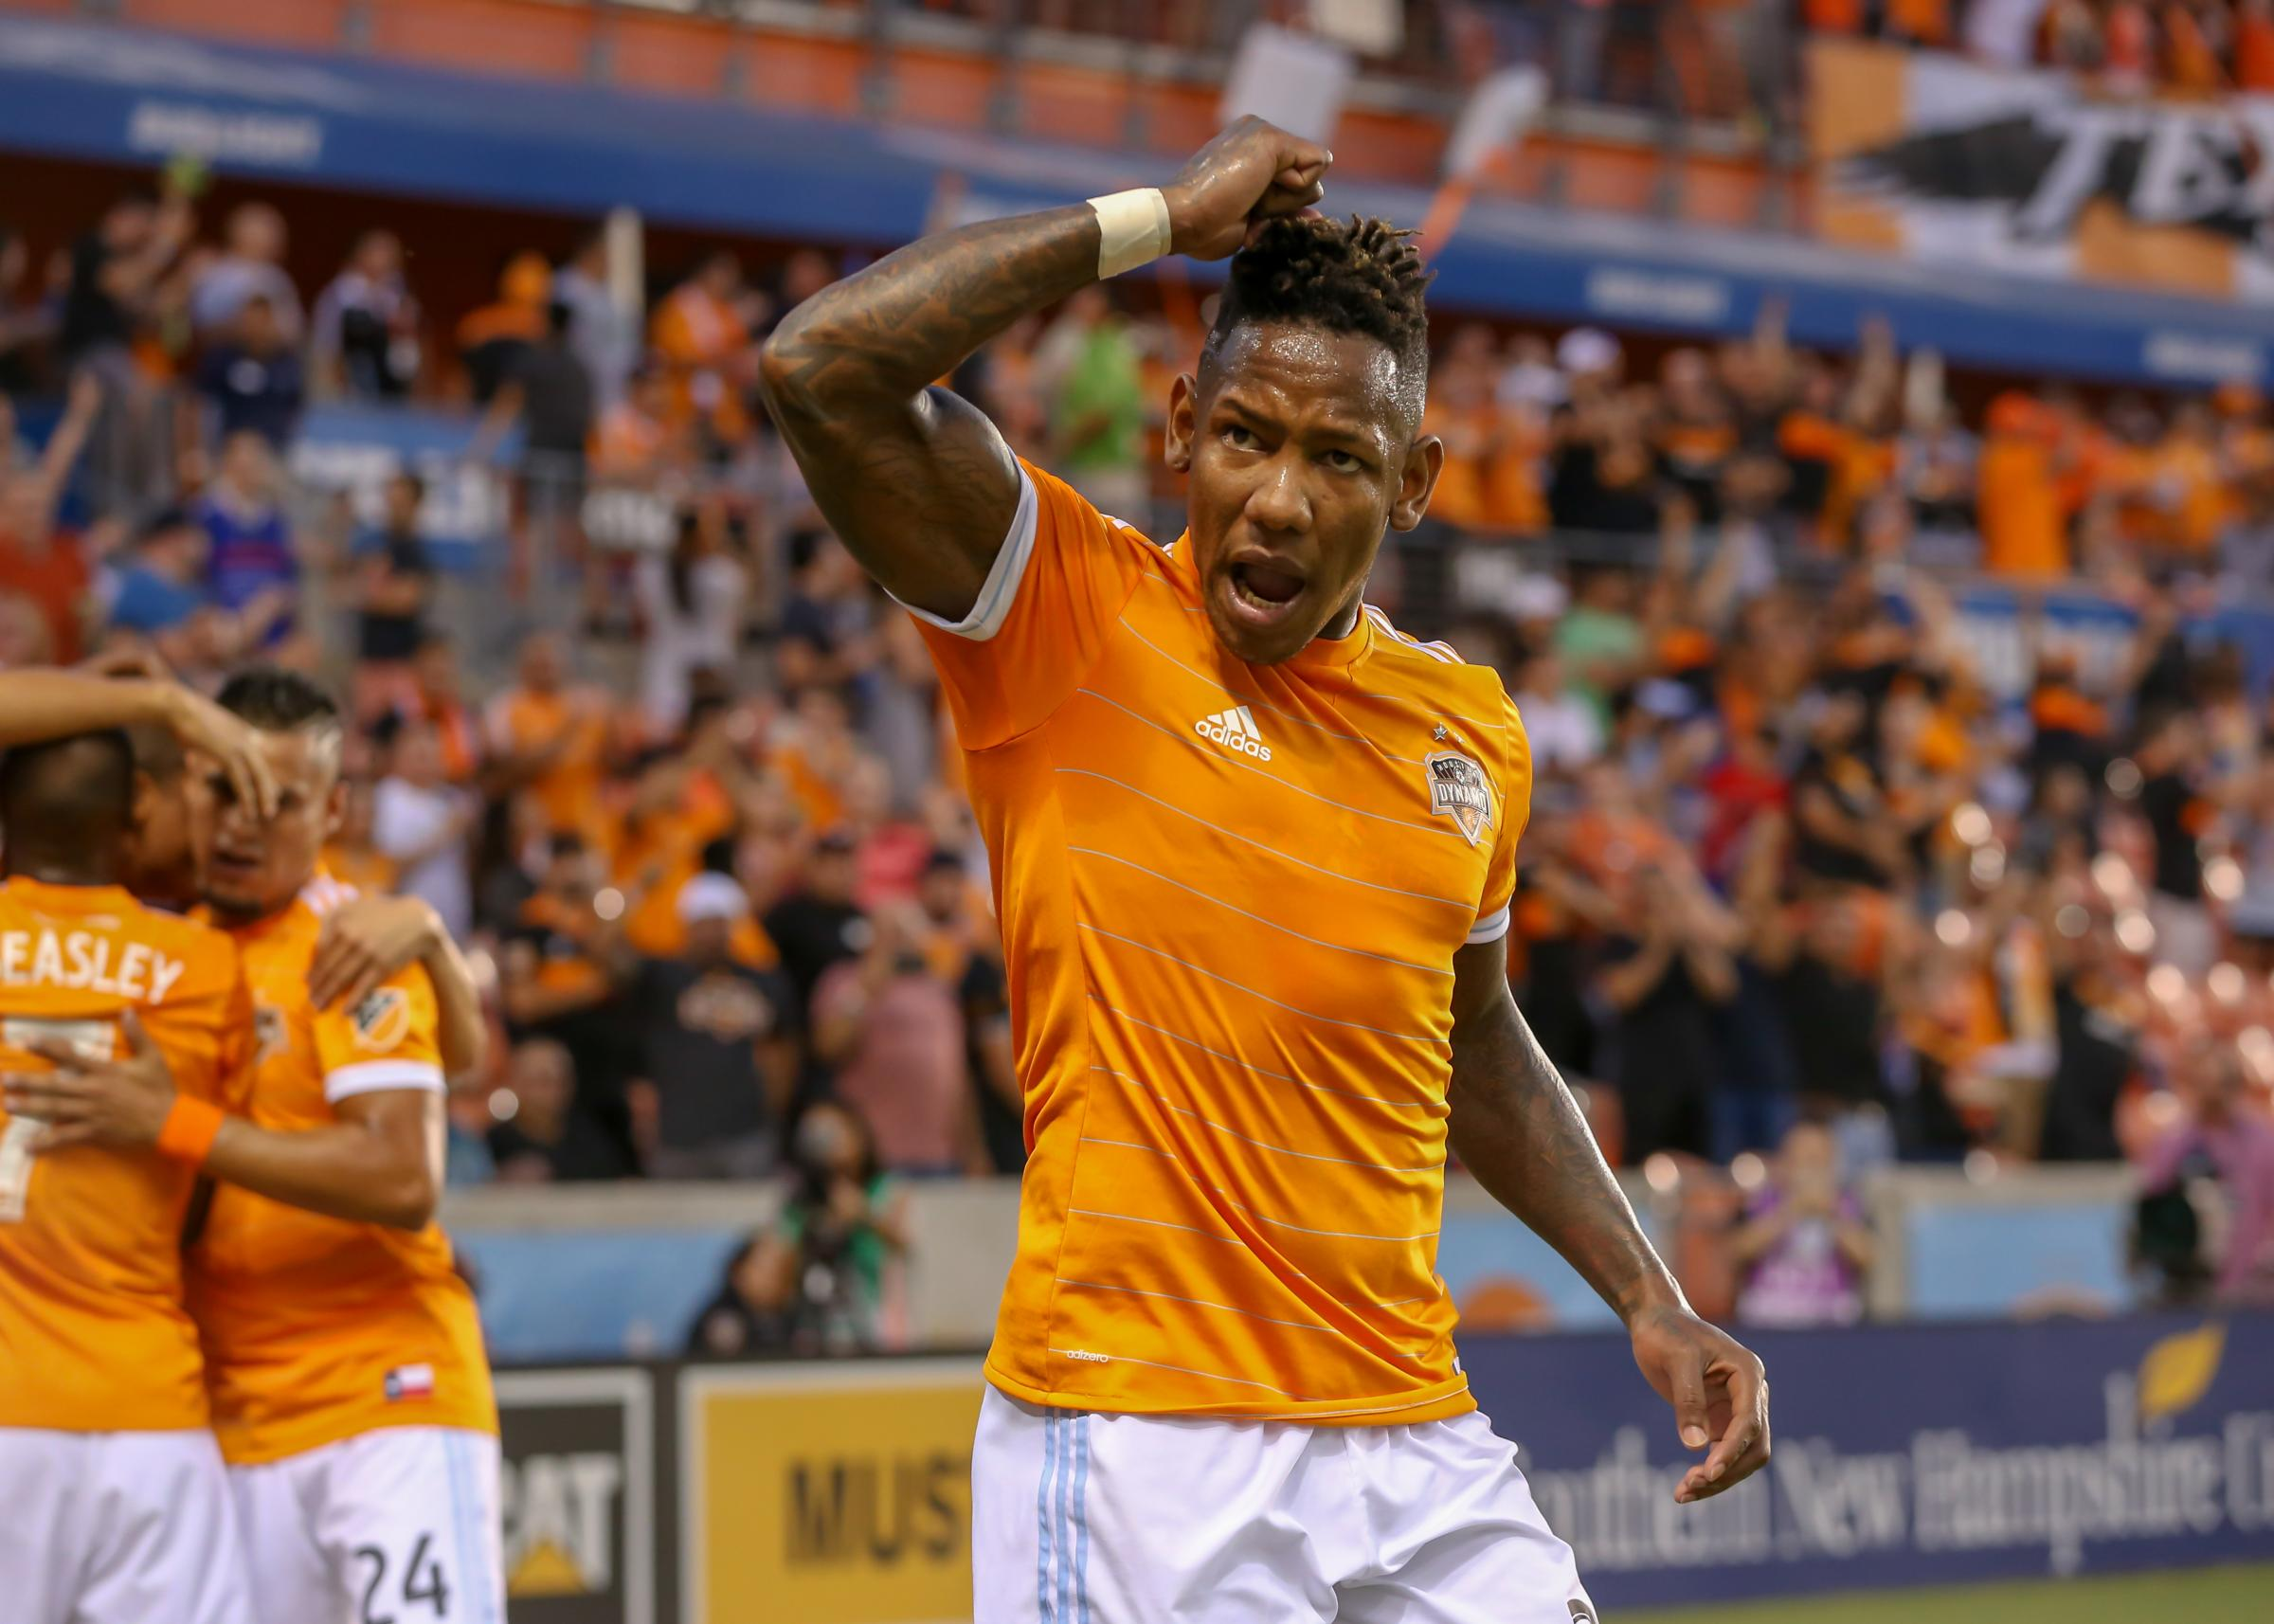 Houston Dynamo striker Alberth Elis